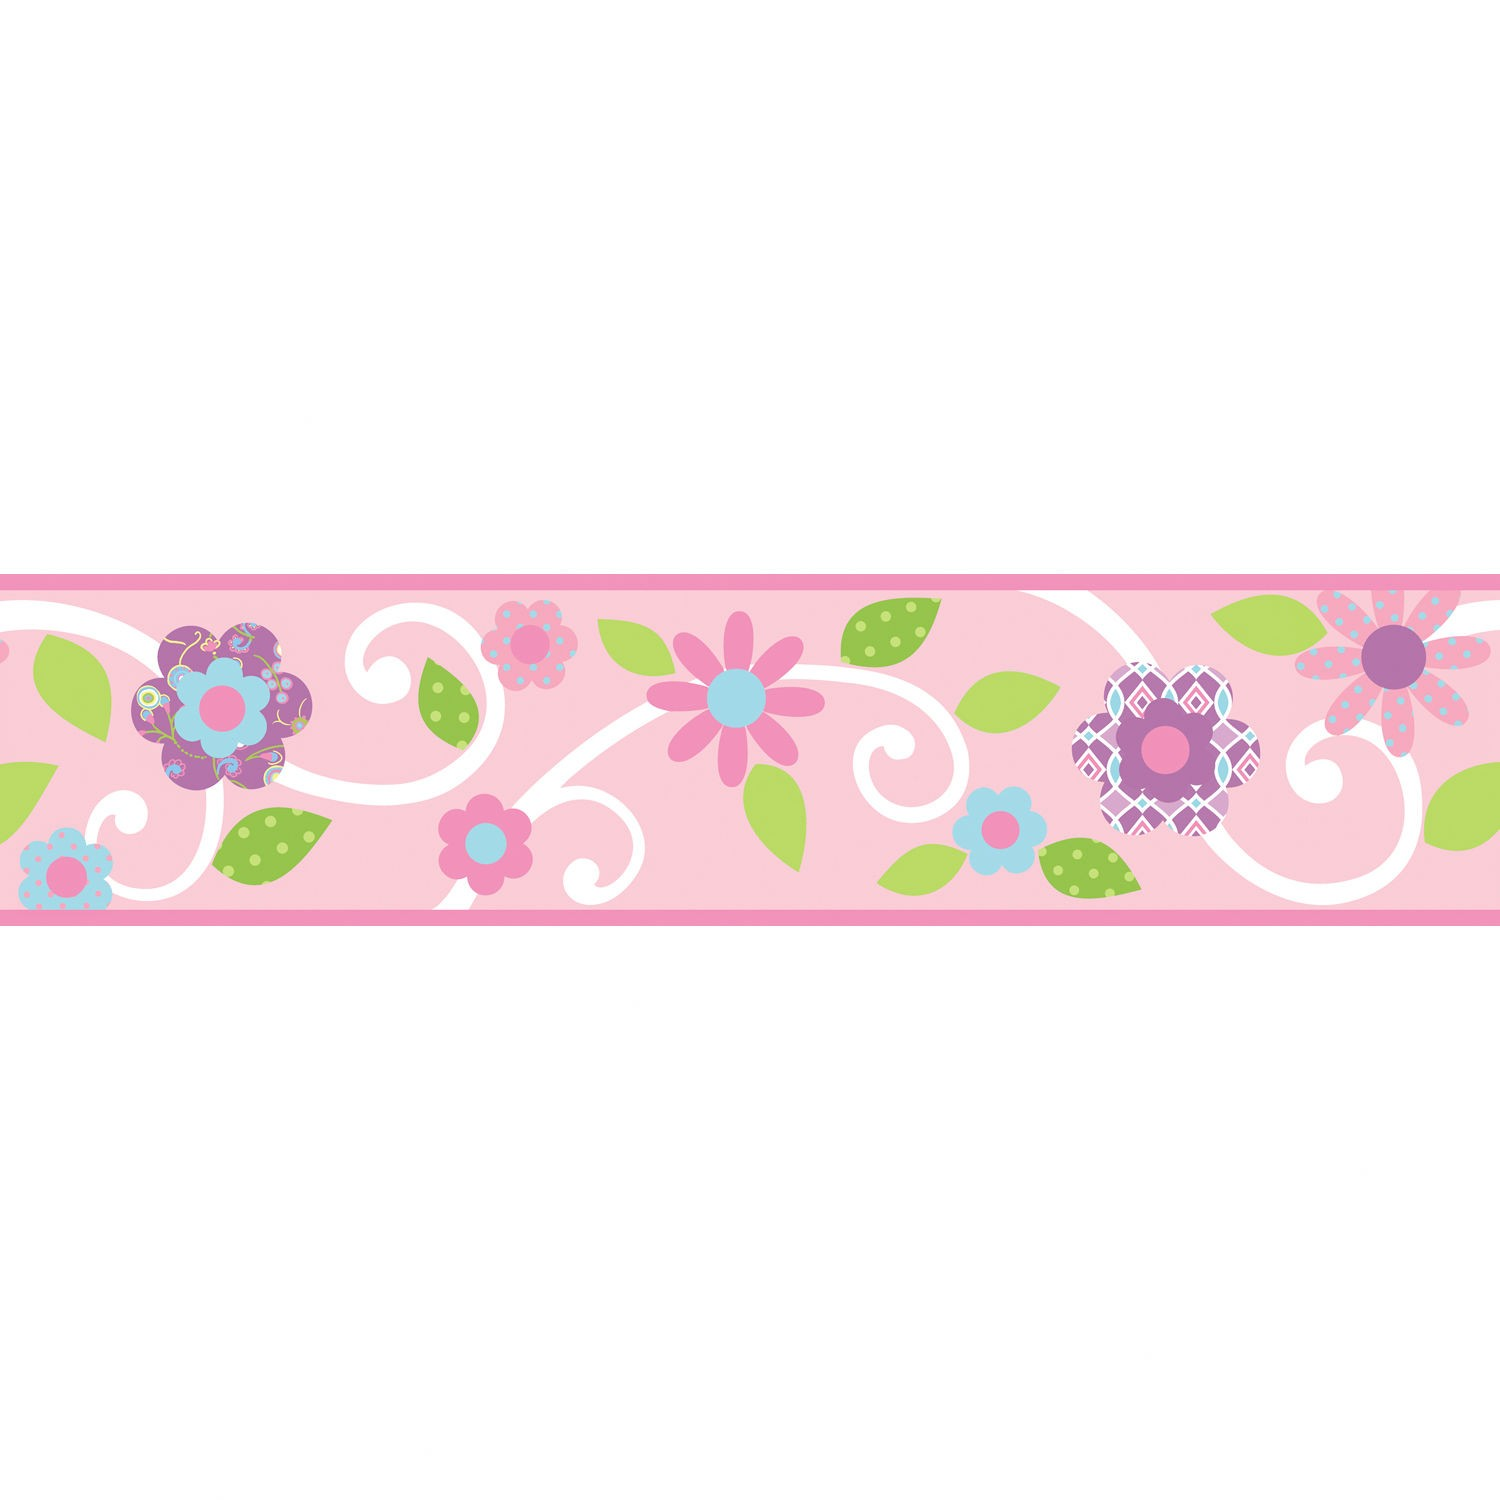 Free Download Room Mates Studio Designs Scroll Floral Wall Border